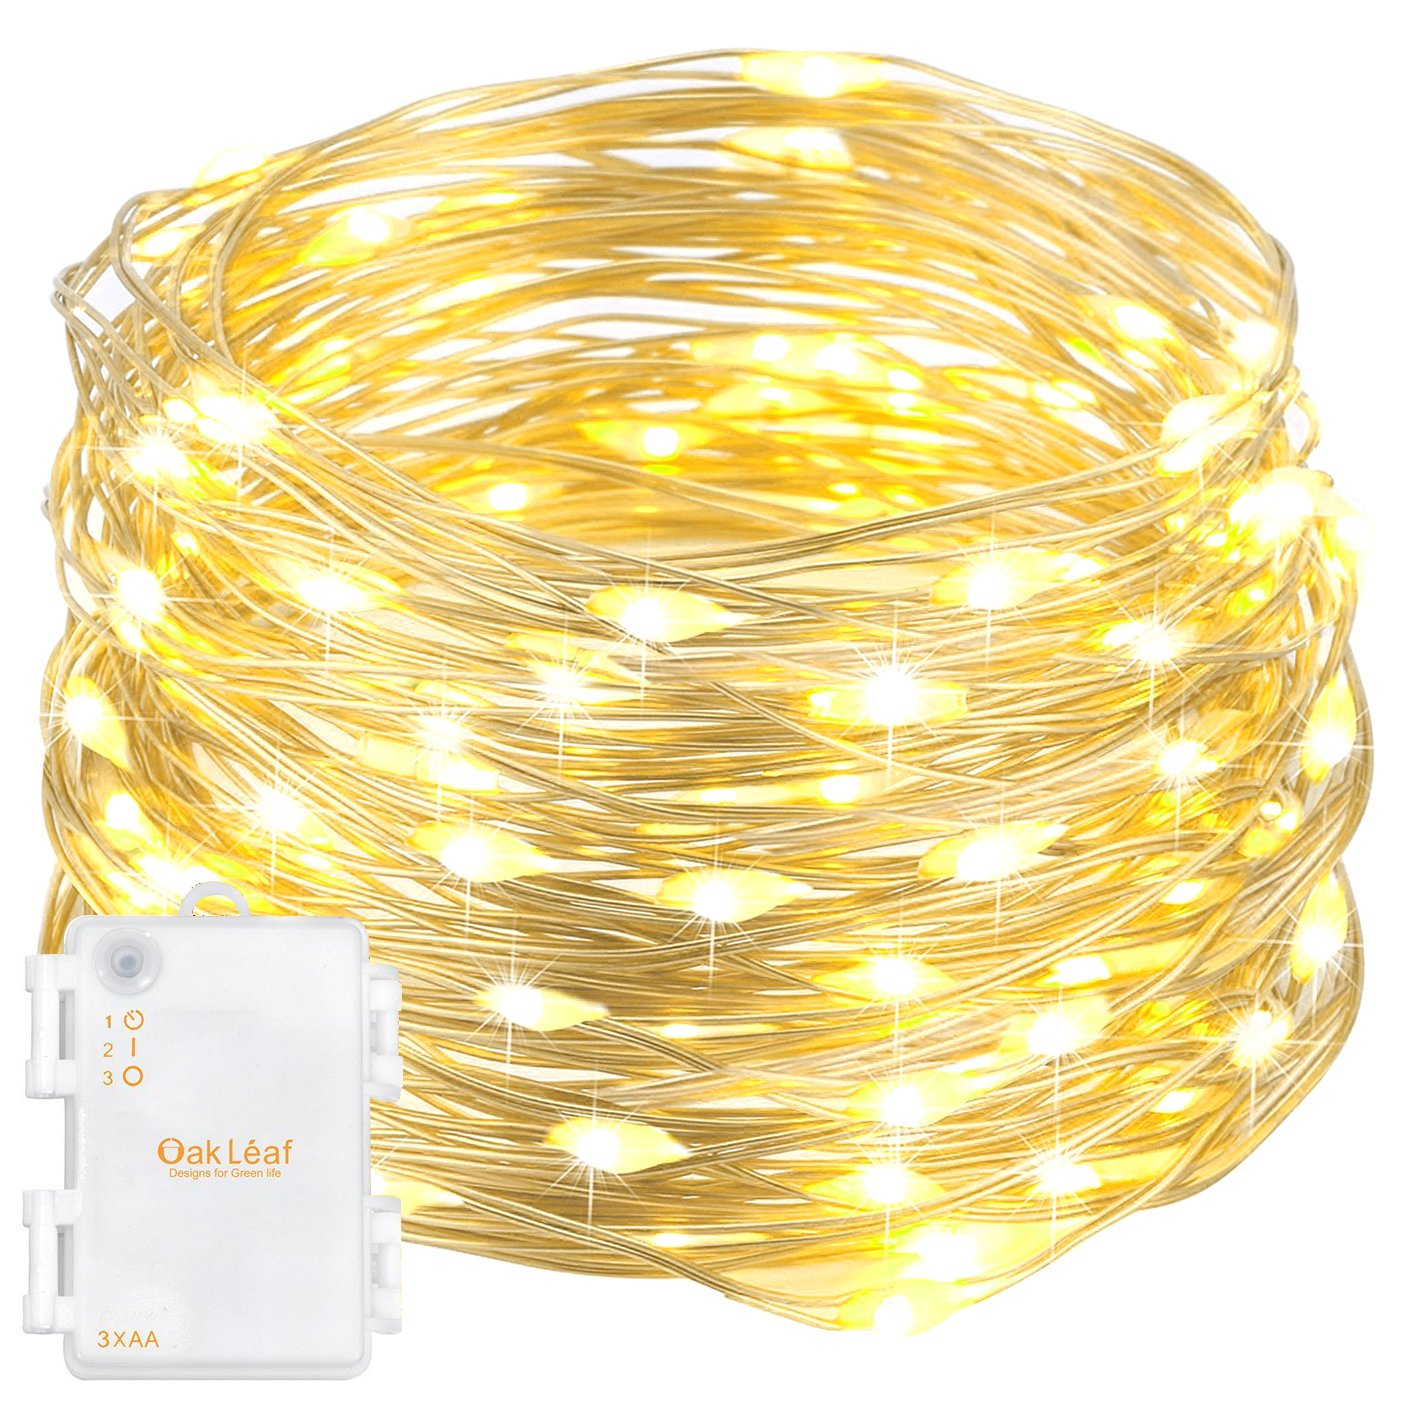 Oak Leaf 60 Led Starry Fairy String Lights Silver Wire Battery Wiring To Leisure Operated 98ft Warm White